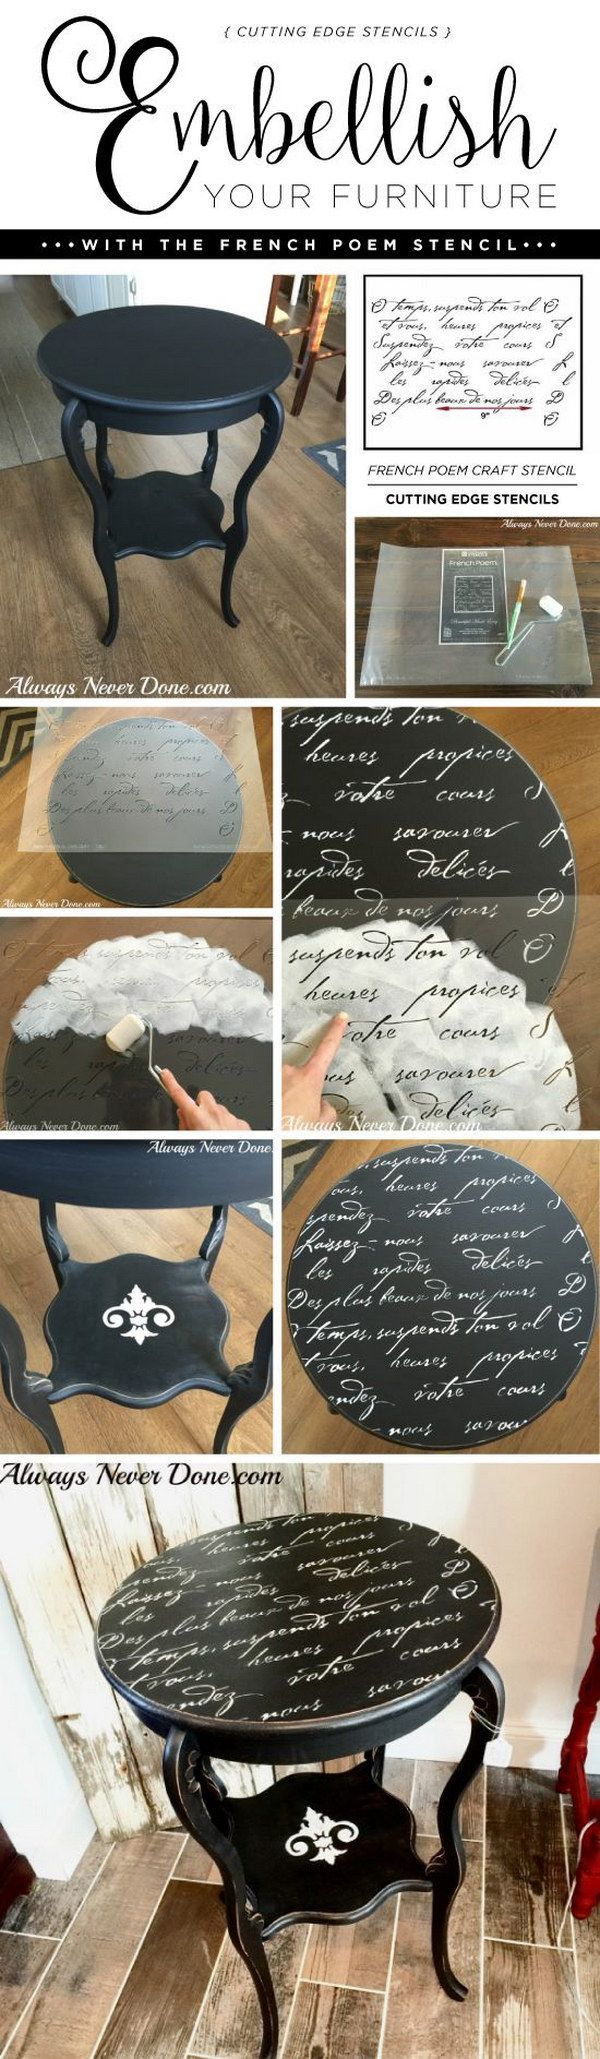 Embellish Your Furniture With the French Poem Stencil. …